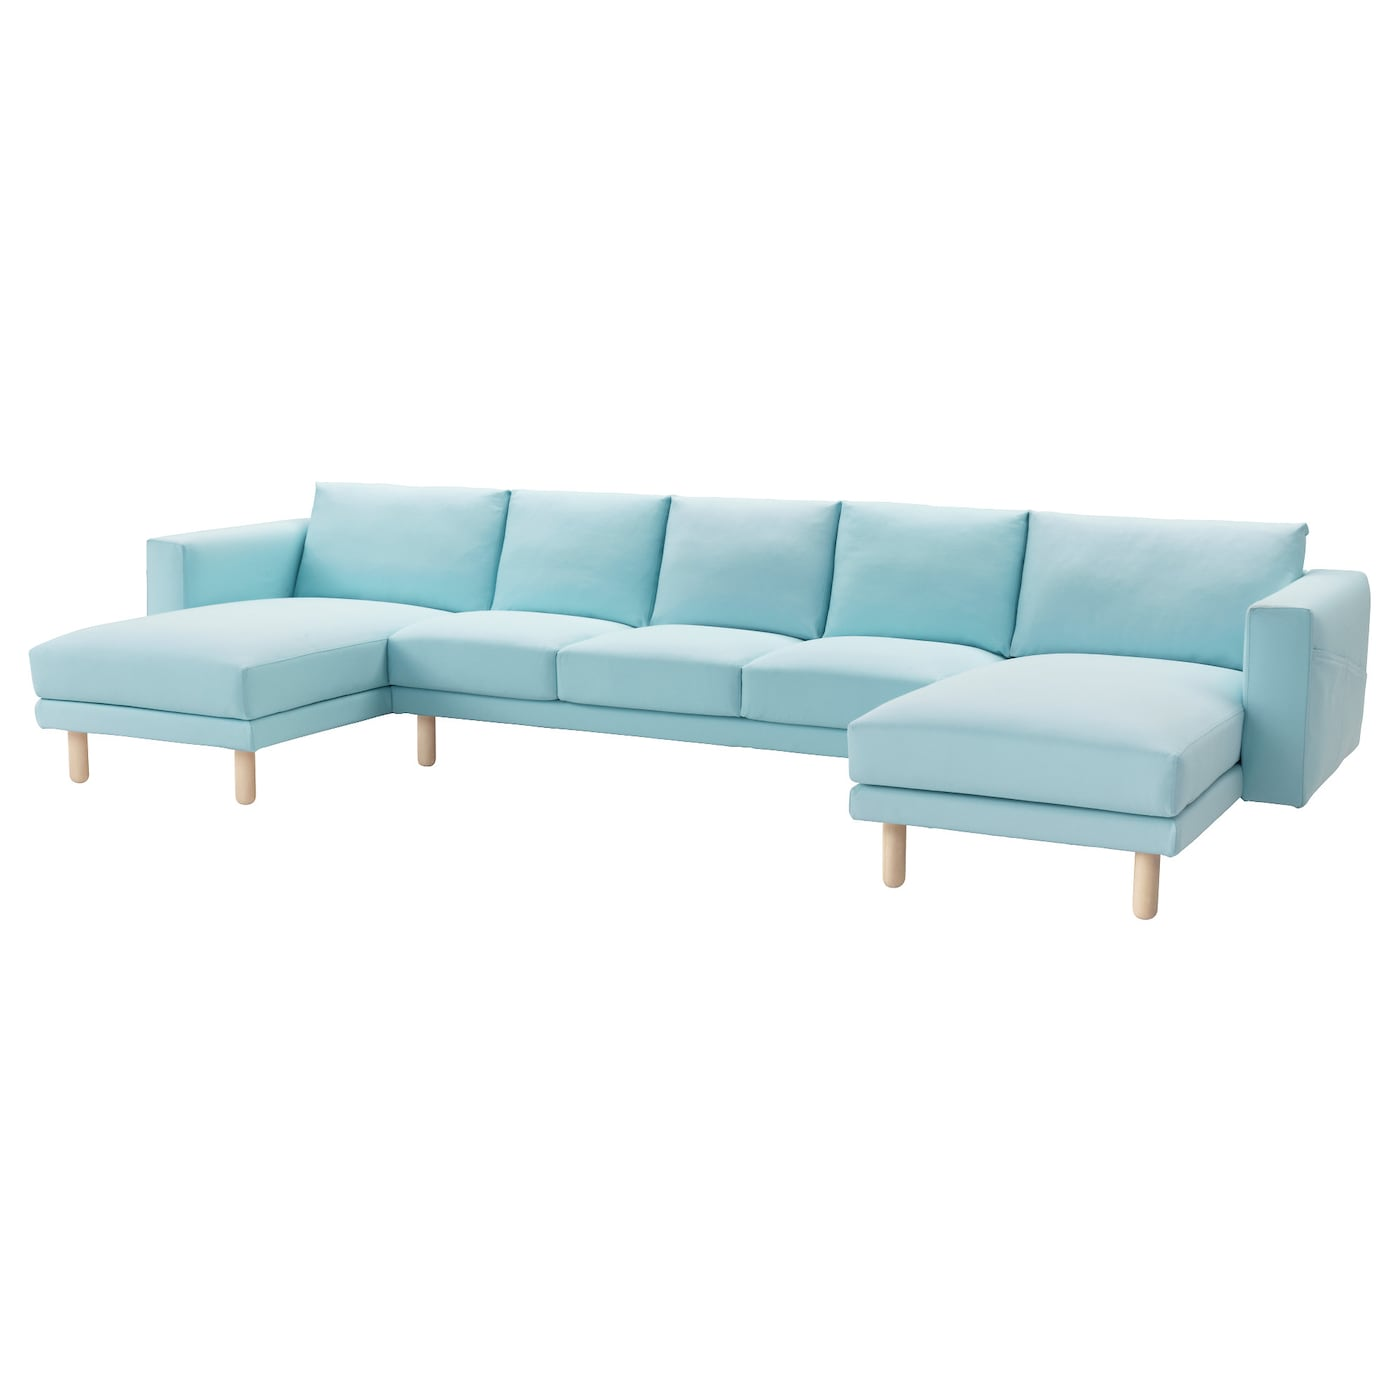 Norsborg 3 seat sofa with 2 chaise longues gr sbo light for 2 seater sofa with chaise